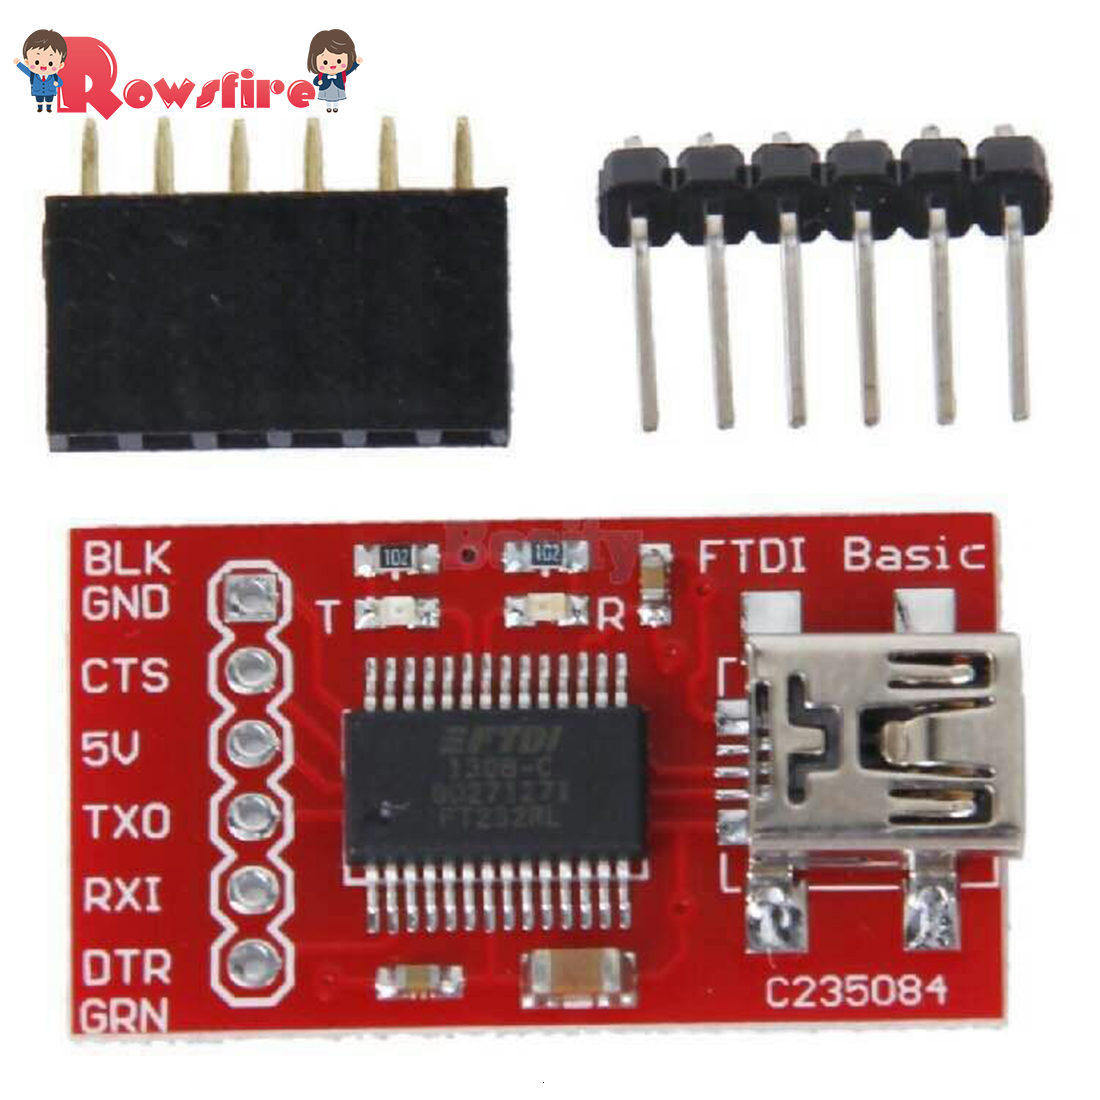 Drop Shipping Hot F3 V4 Flight Control Board AIO 25mW 200mW 600mW Switchable Transmitter OSD BEC PDB Current Sensor